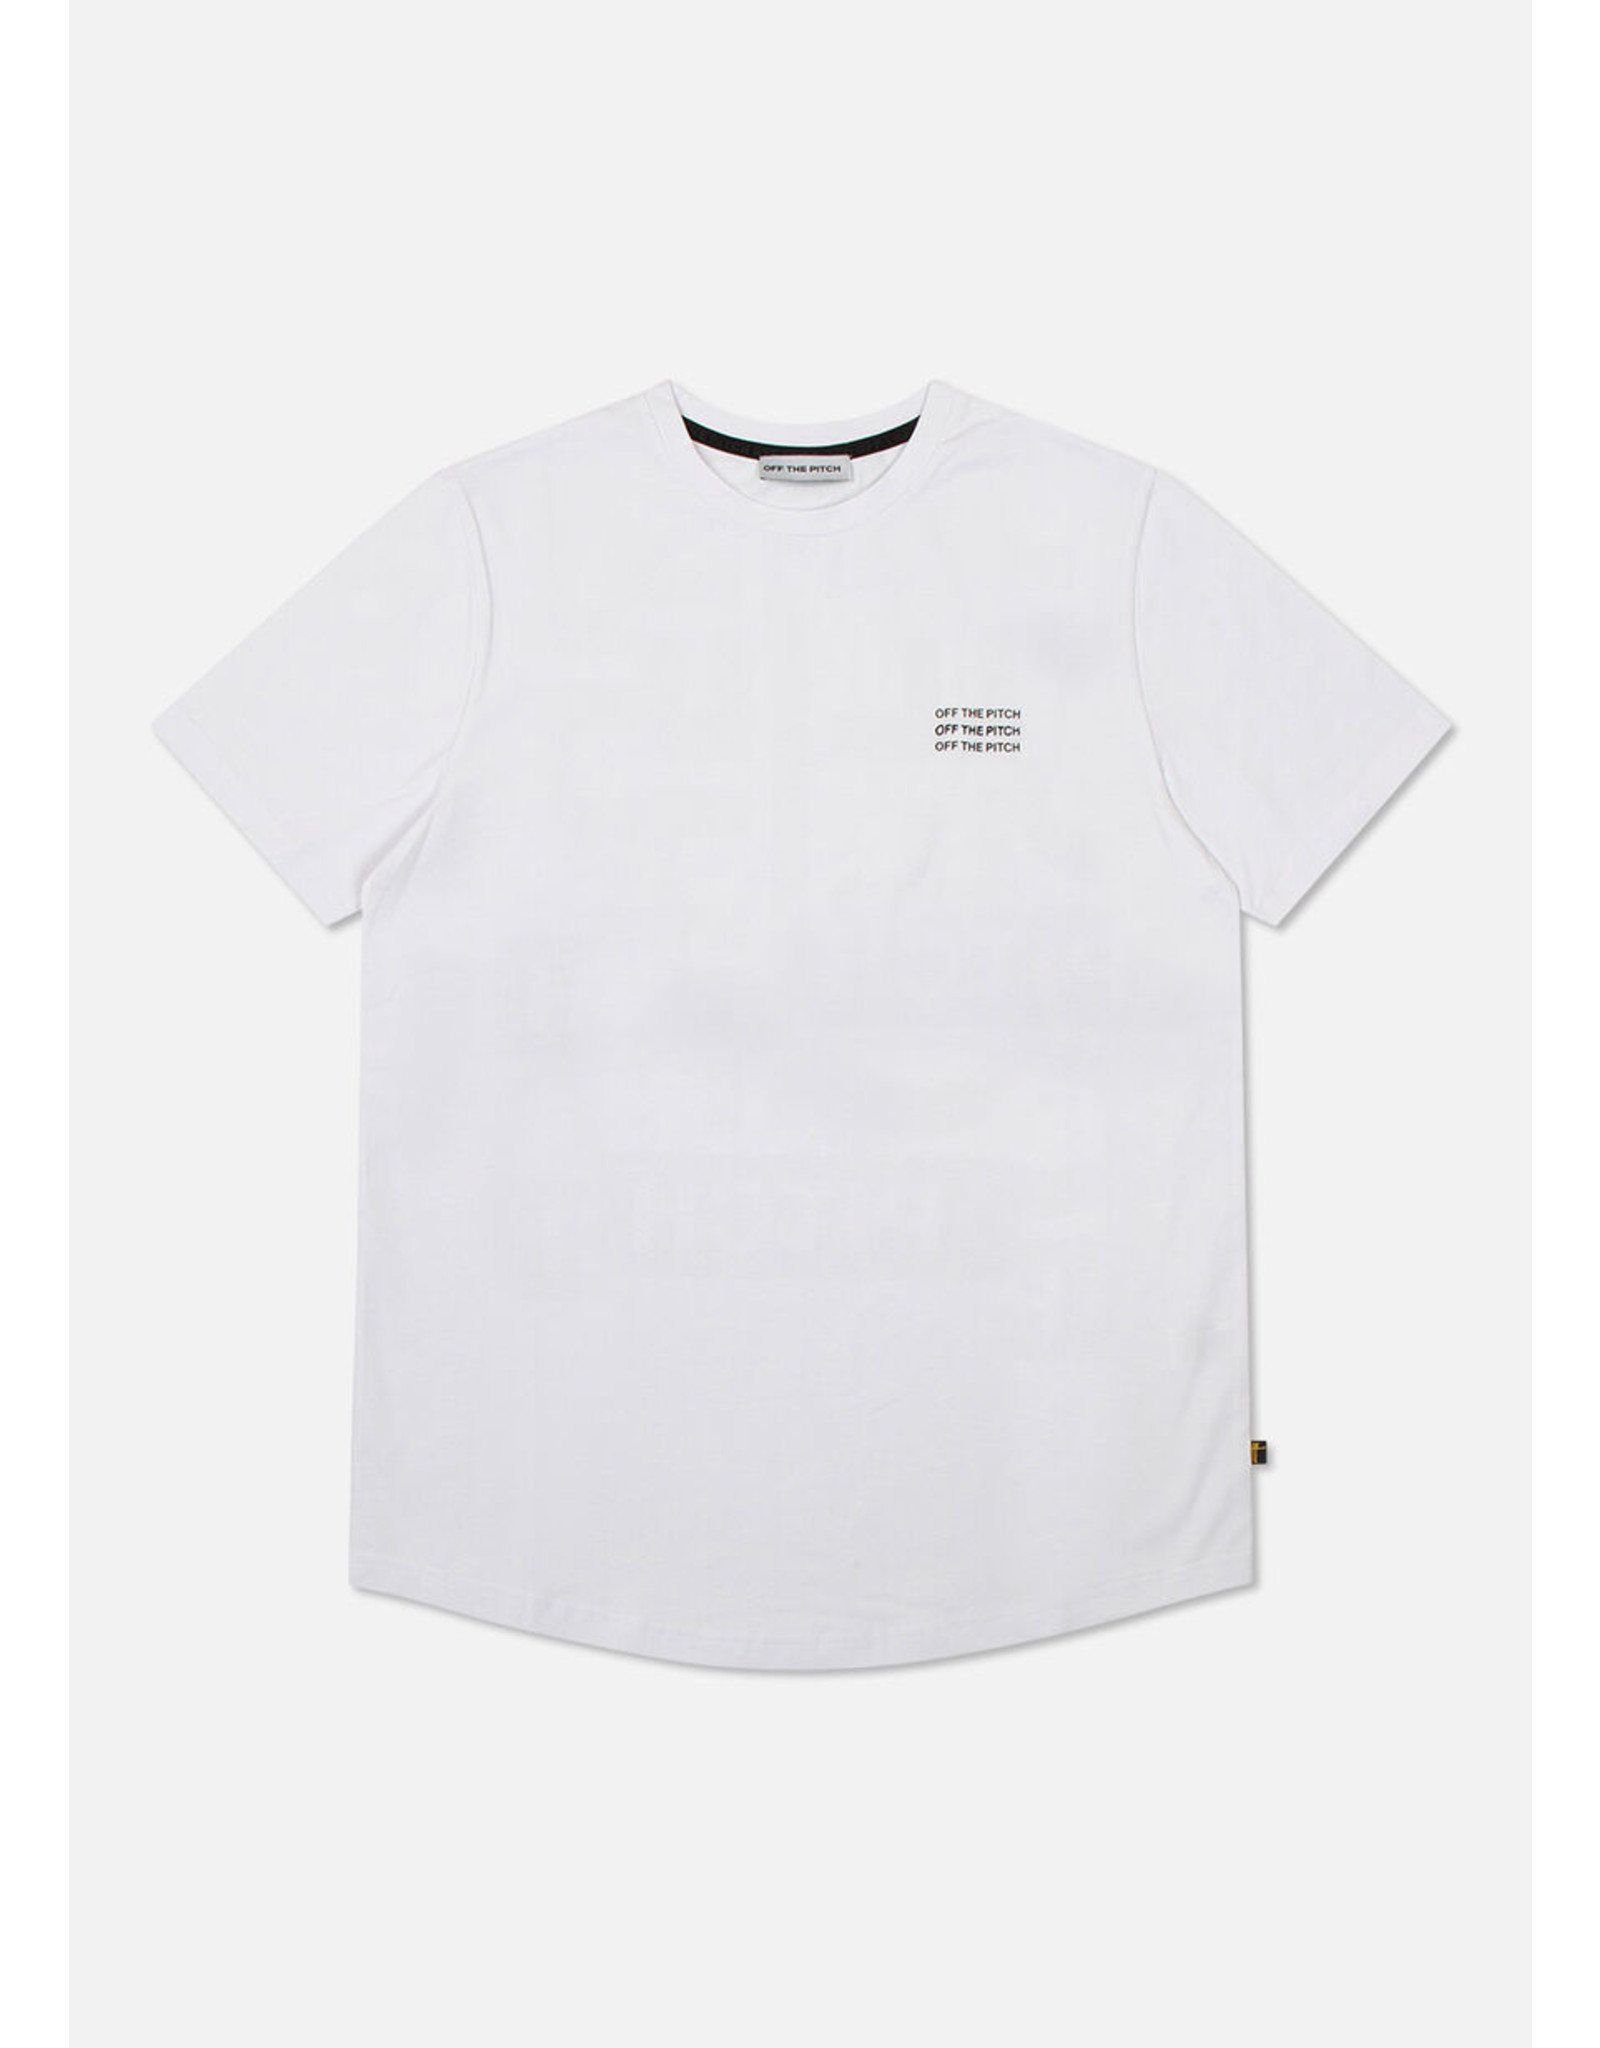 Off the pitch The Saturn Slimfit Tee